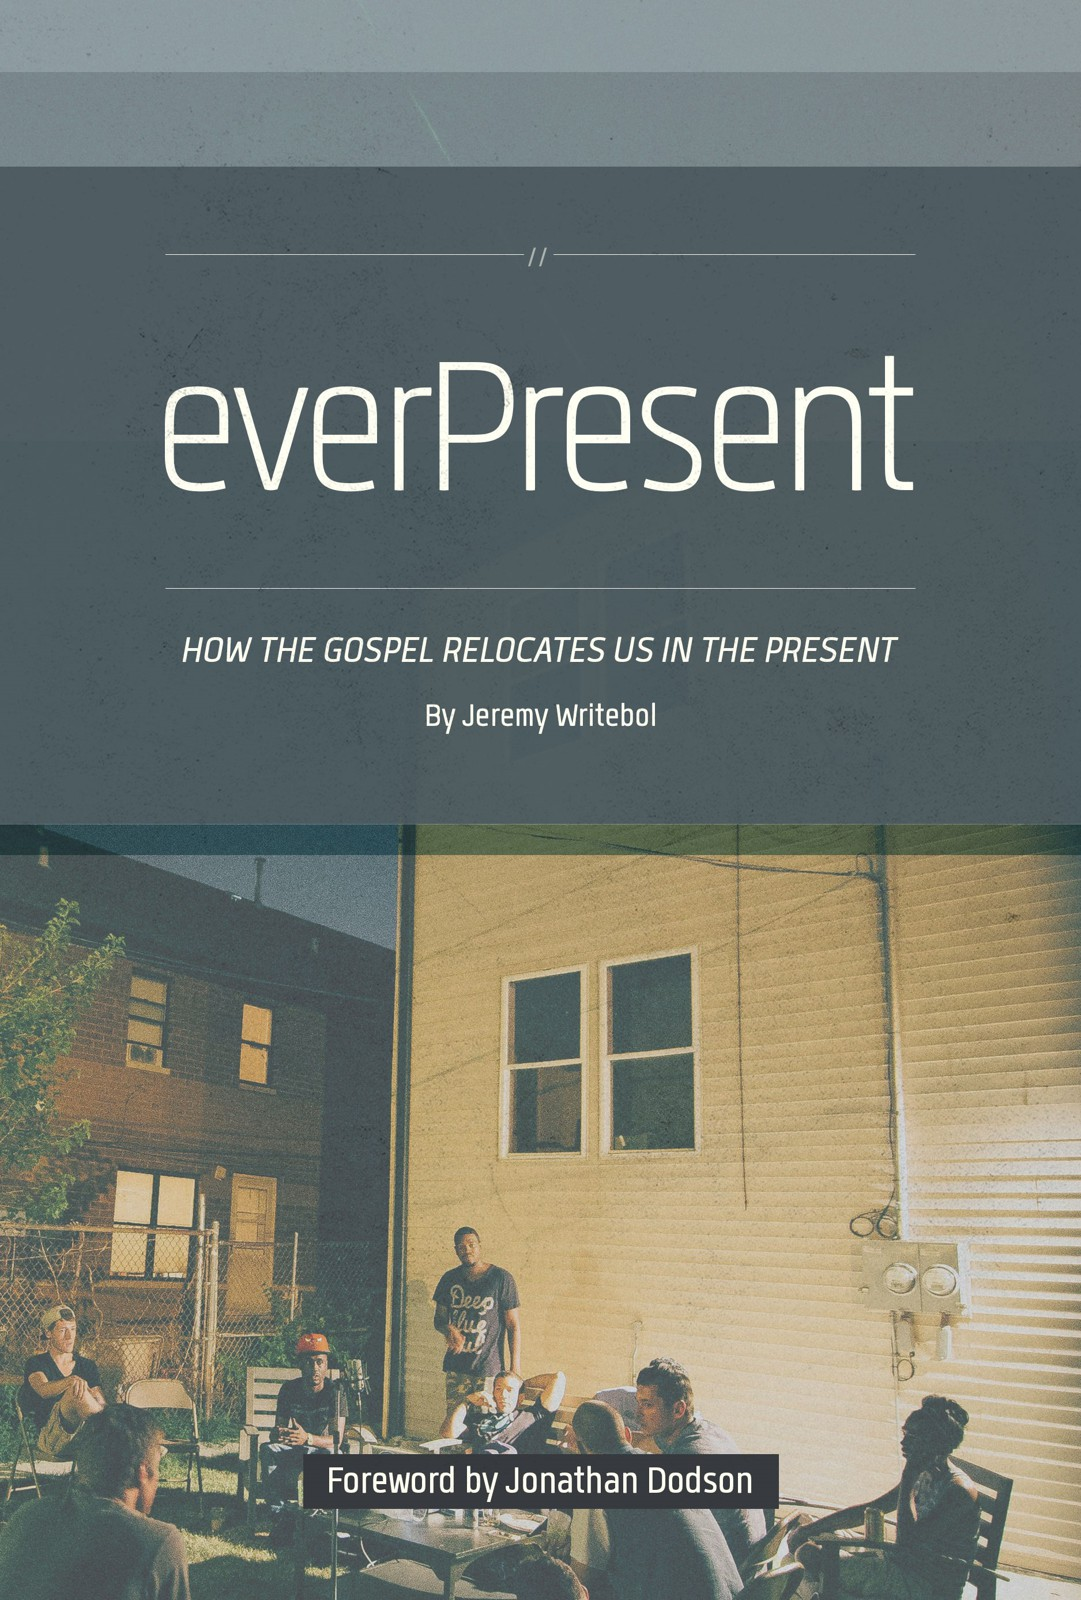 everPresent_ How the Gospel Relocates Us in the Present - Jeremy Writebol